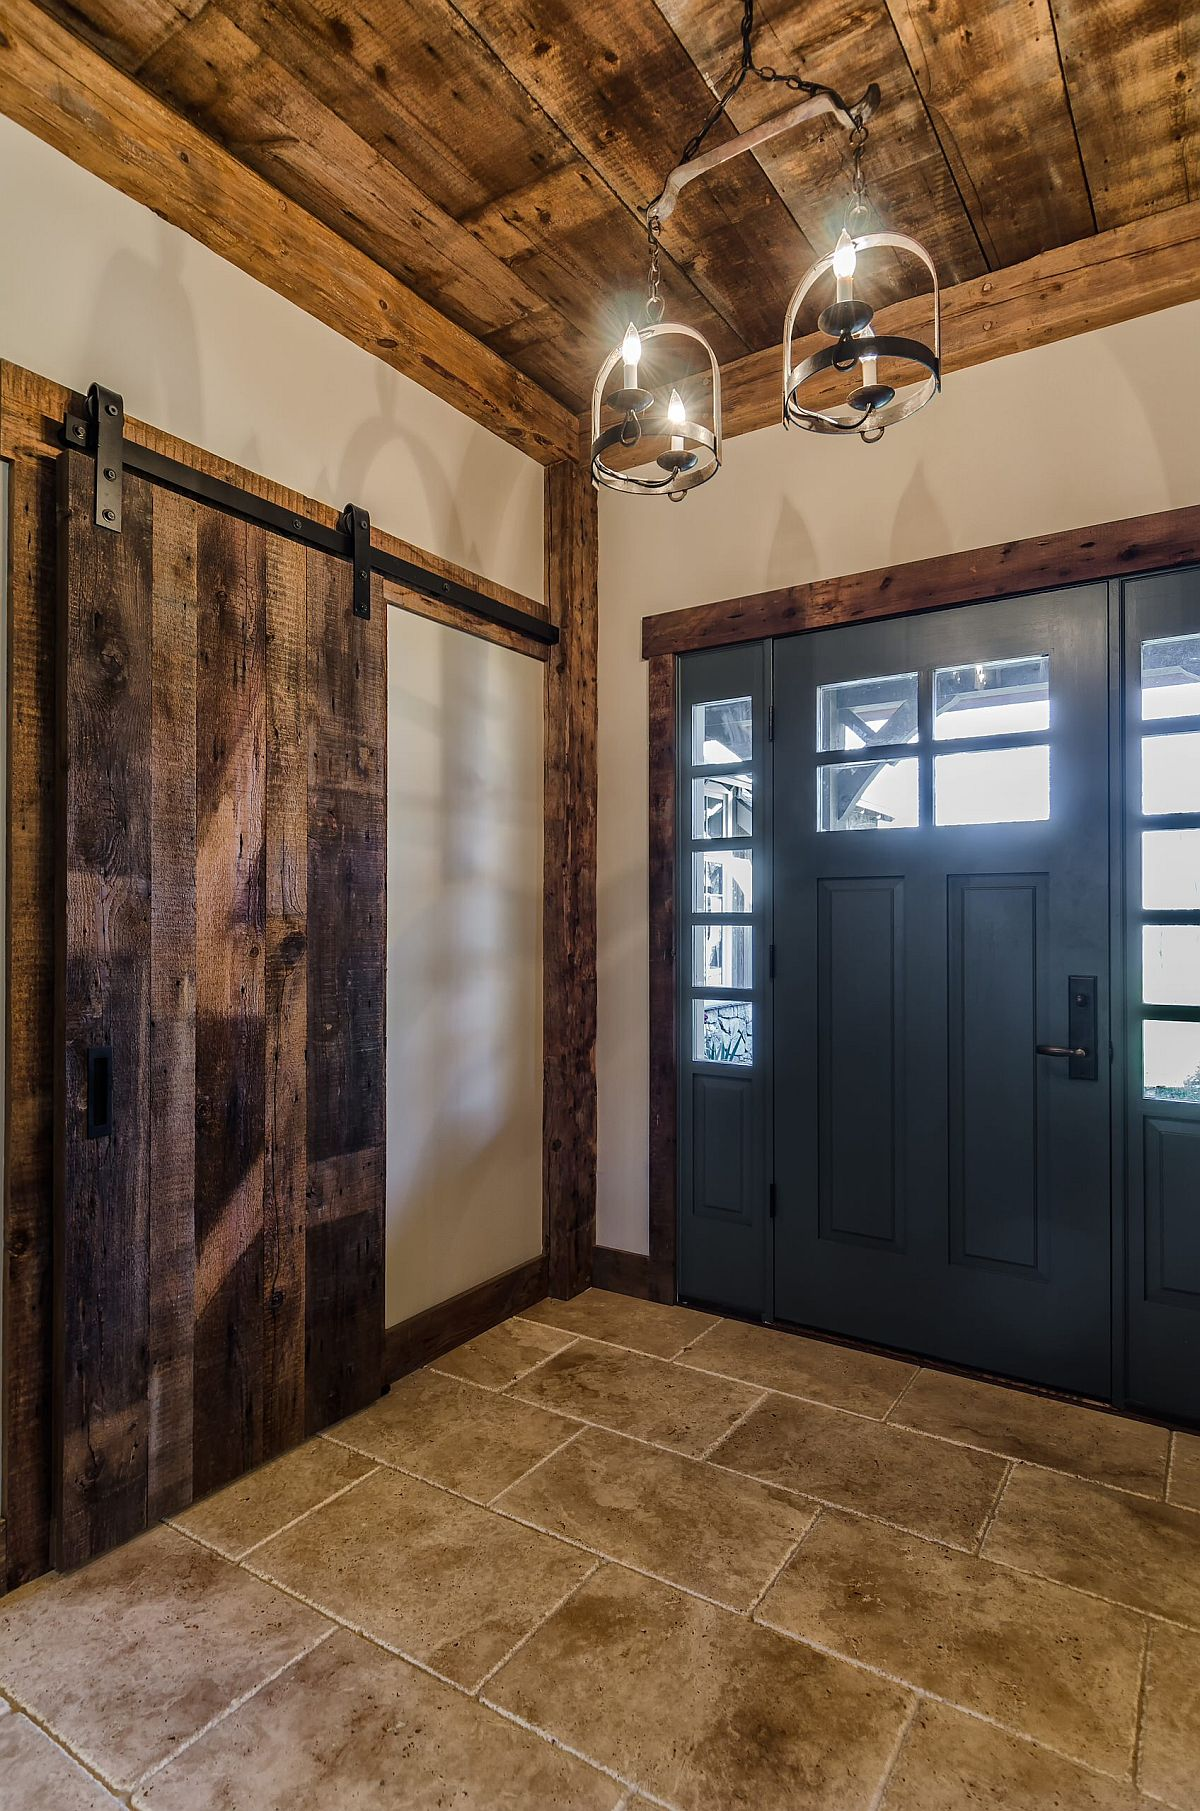 Reclaimed wood ceiling is coupled with a gorgeous sliding barn door to create a dashing modern rustic entry for this New York home